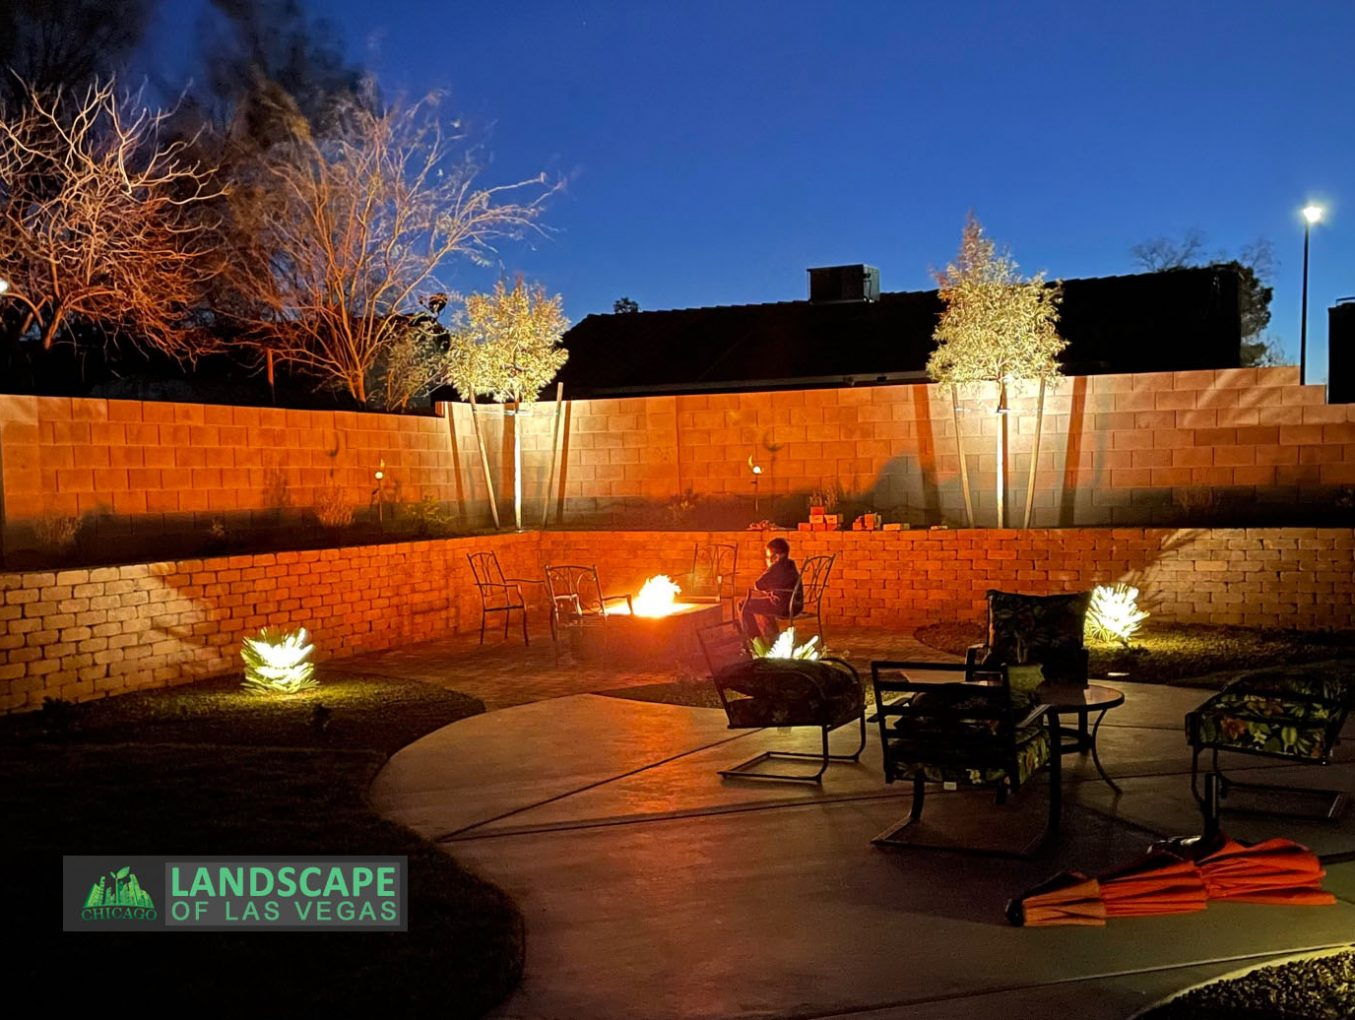 Fire Pit Design & Build for those Cool Las Vegas Nights!